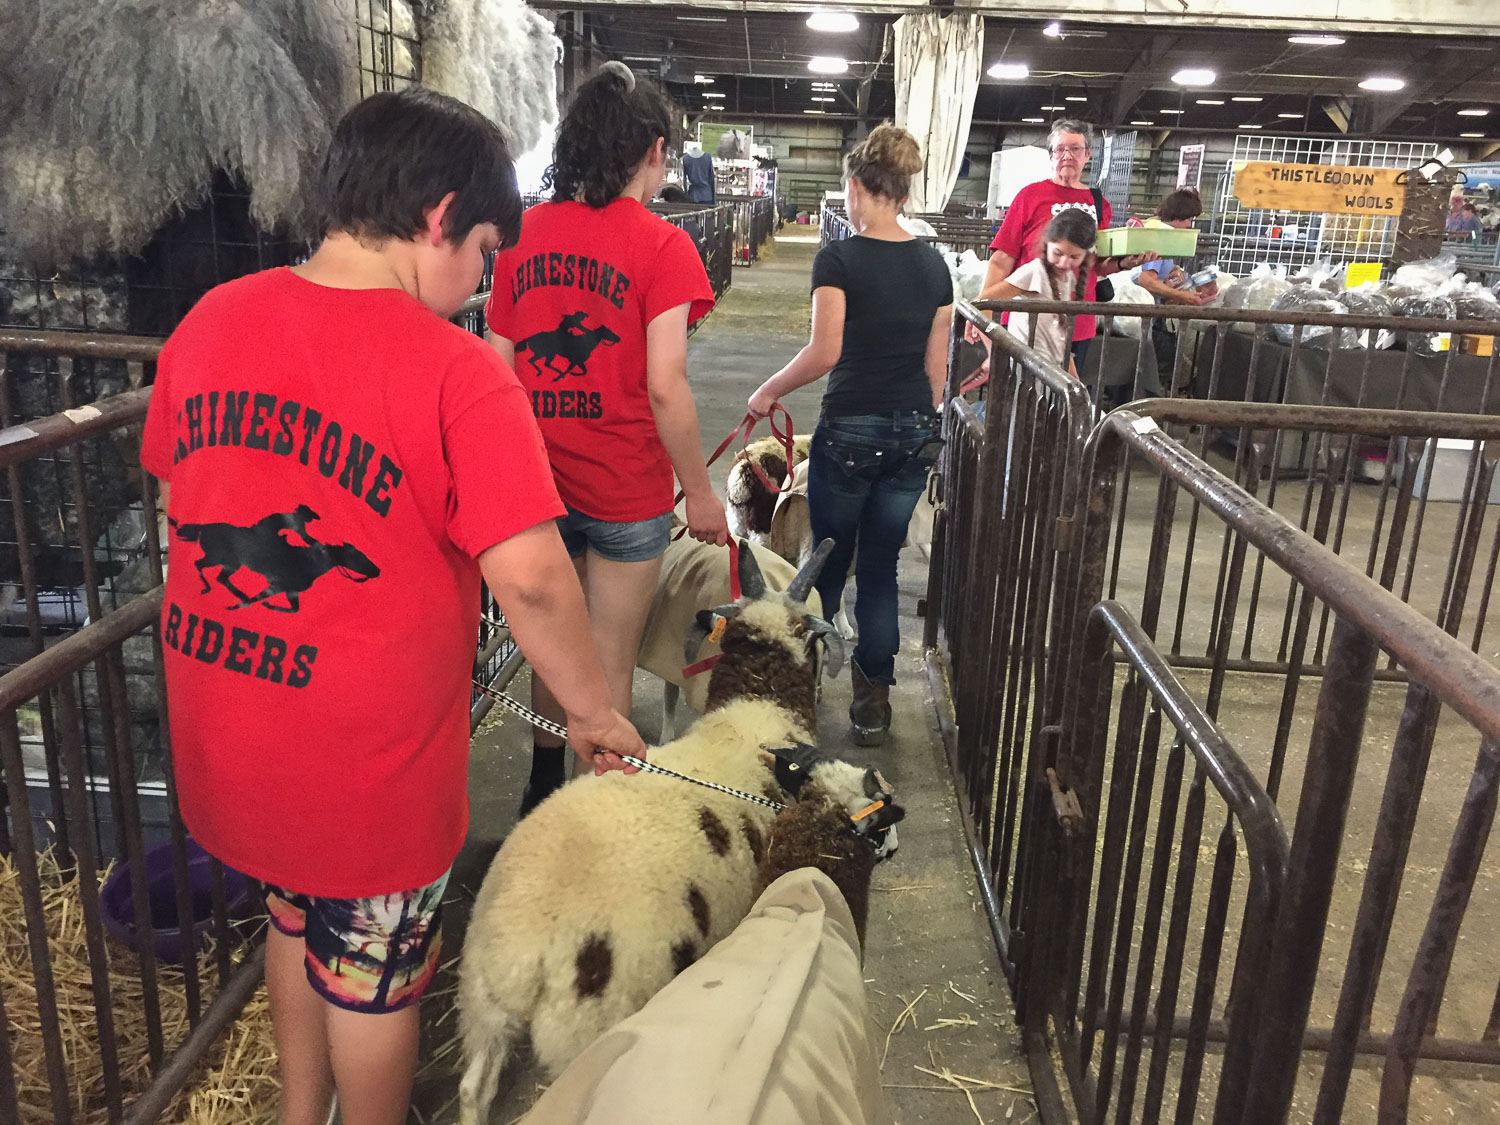 Taking sheep into the fairgrounds.